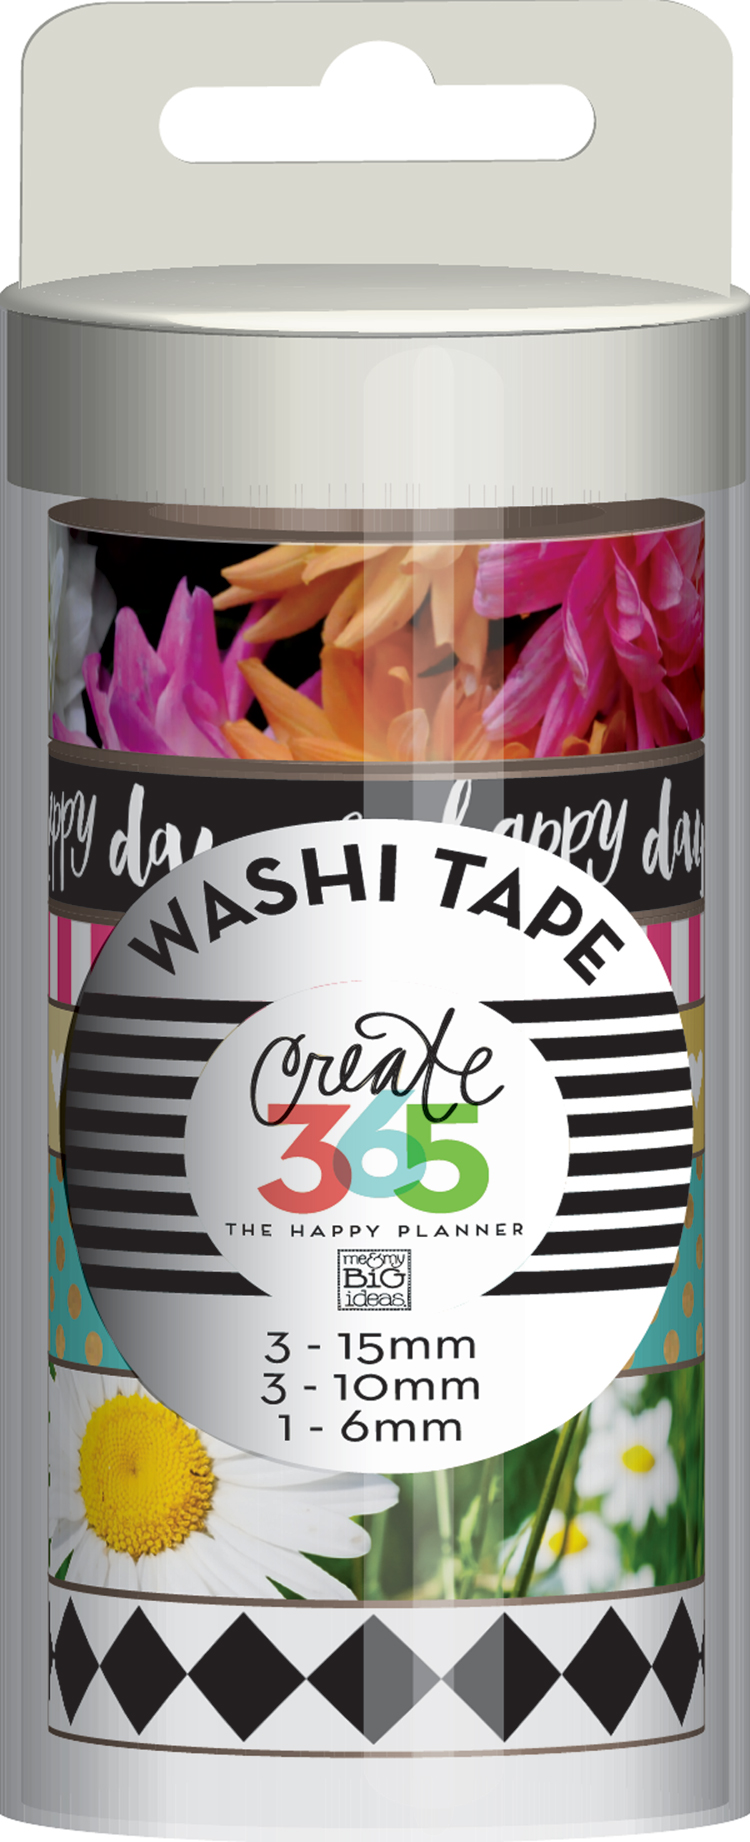 'Picture Quote' washi tape for The Happy Planner™   me & my BIG ideas.jpg